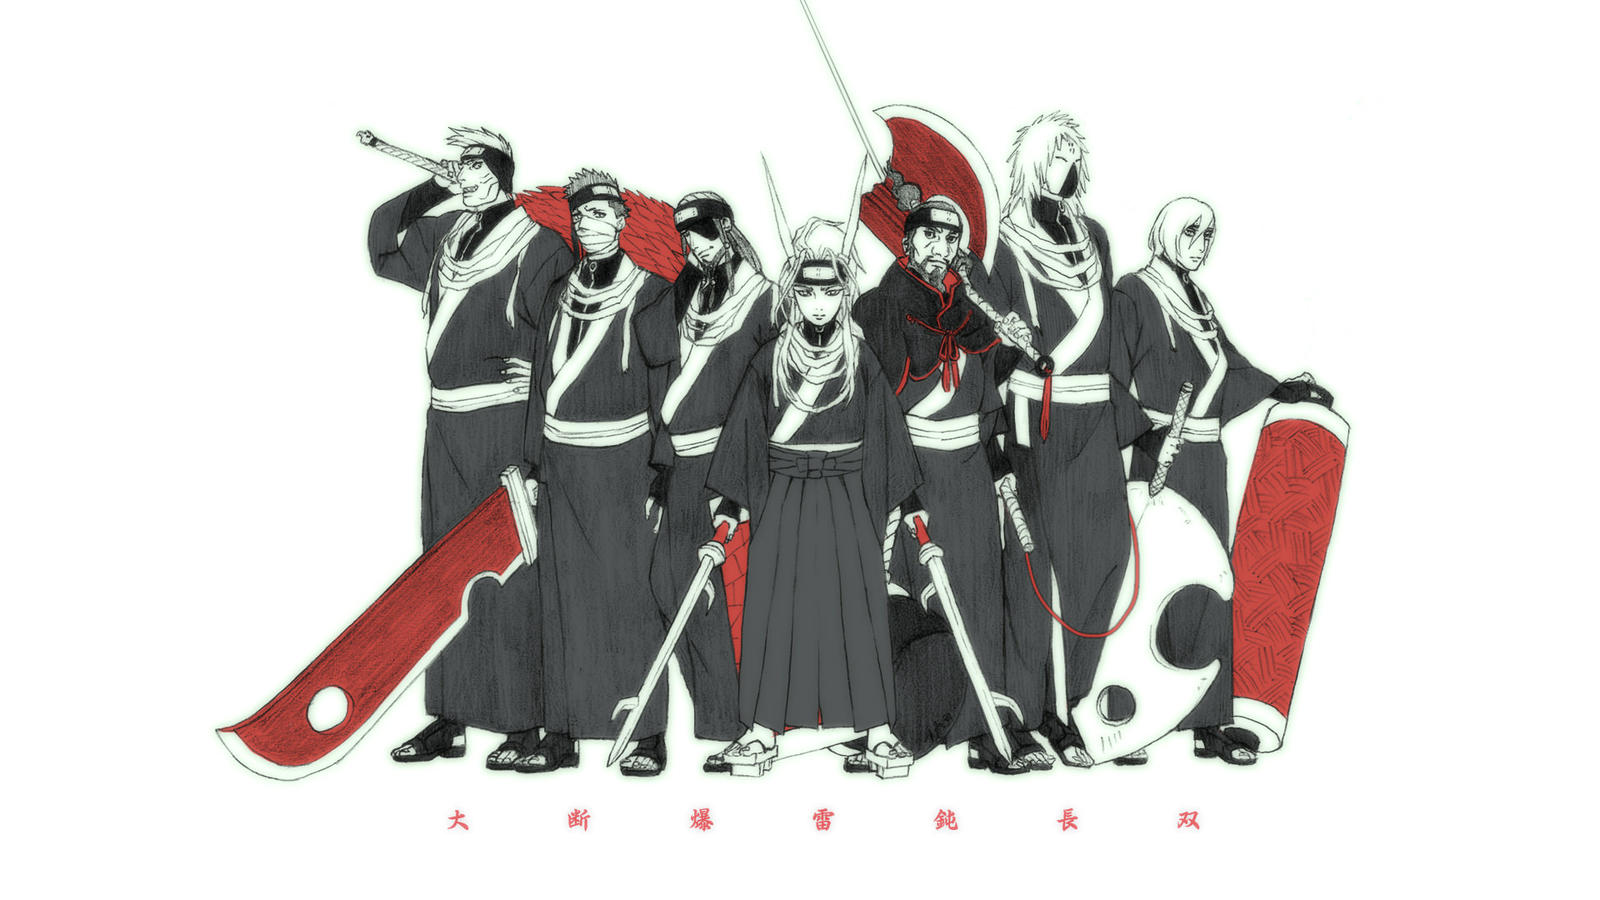 Seven Ninja Swordsmen of the Mist by puccapucca02